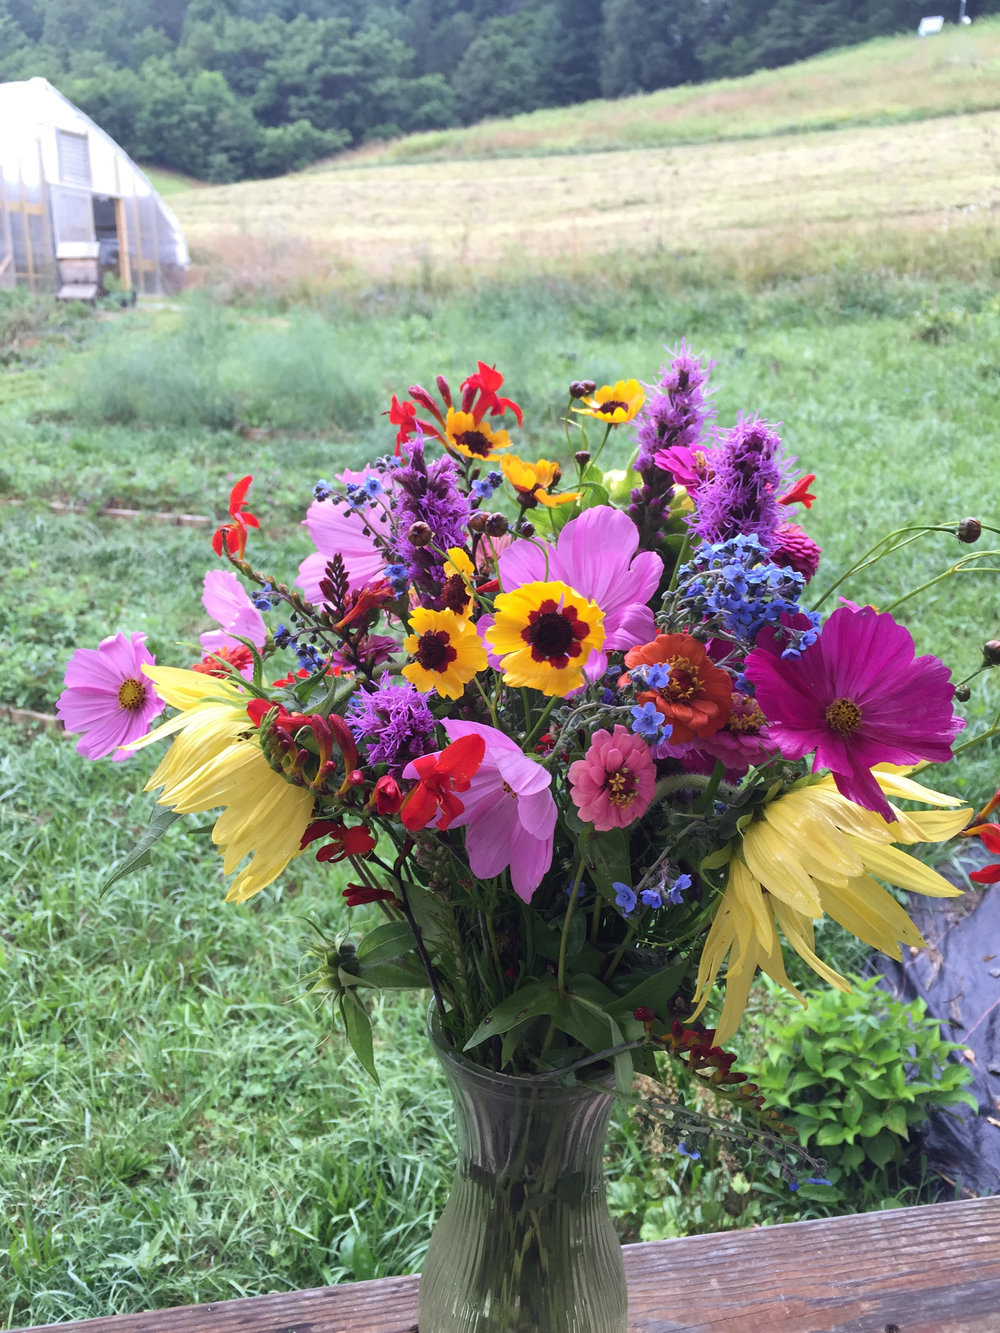 Flowers that were grown and harvested at Indigo Bunting Farm.